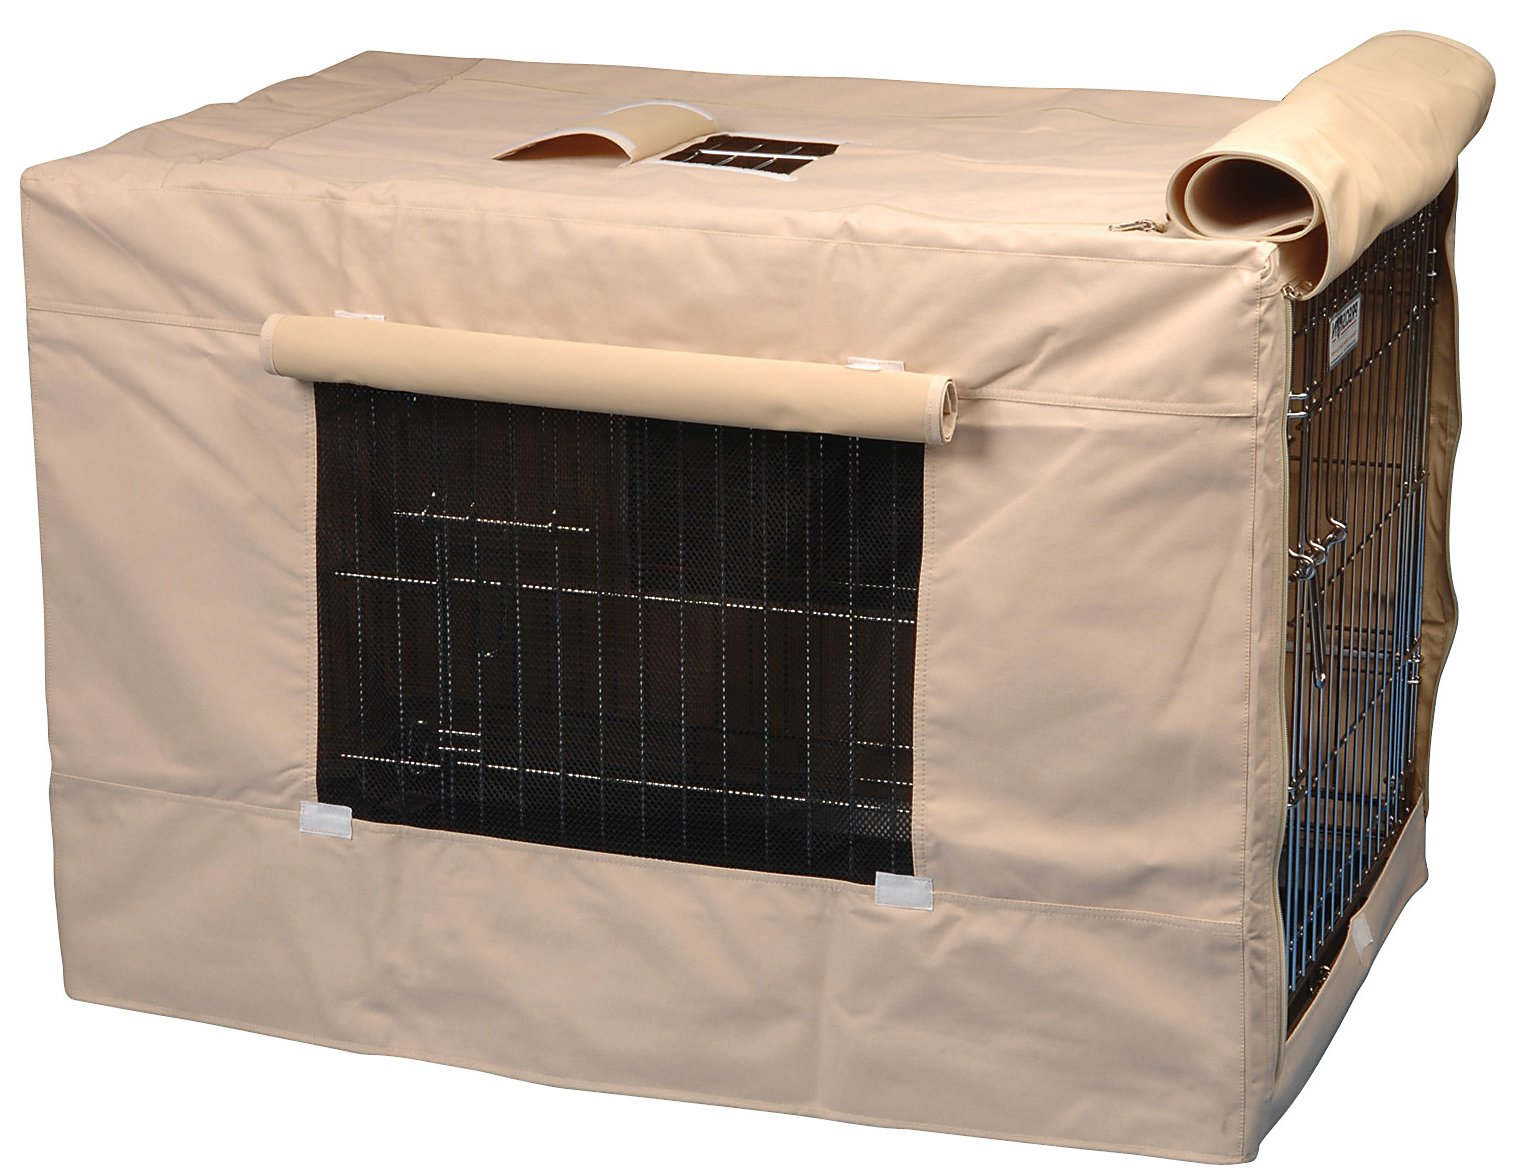 Enamour Dog Crate Pet Crate Design Selections Homesfeed Dog Crate Covers Ireland Dog Crate Covers Wood Light Brown Fabric Cover bark post Dog Crate Covers